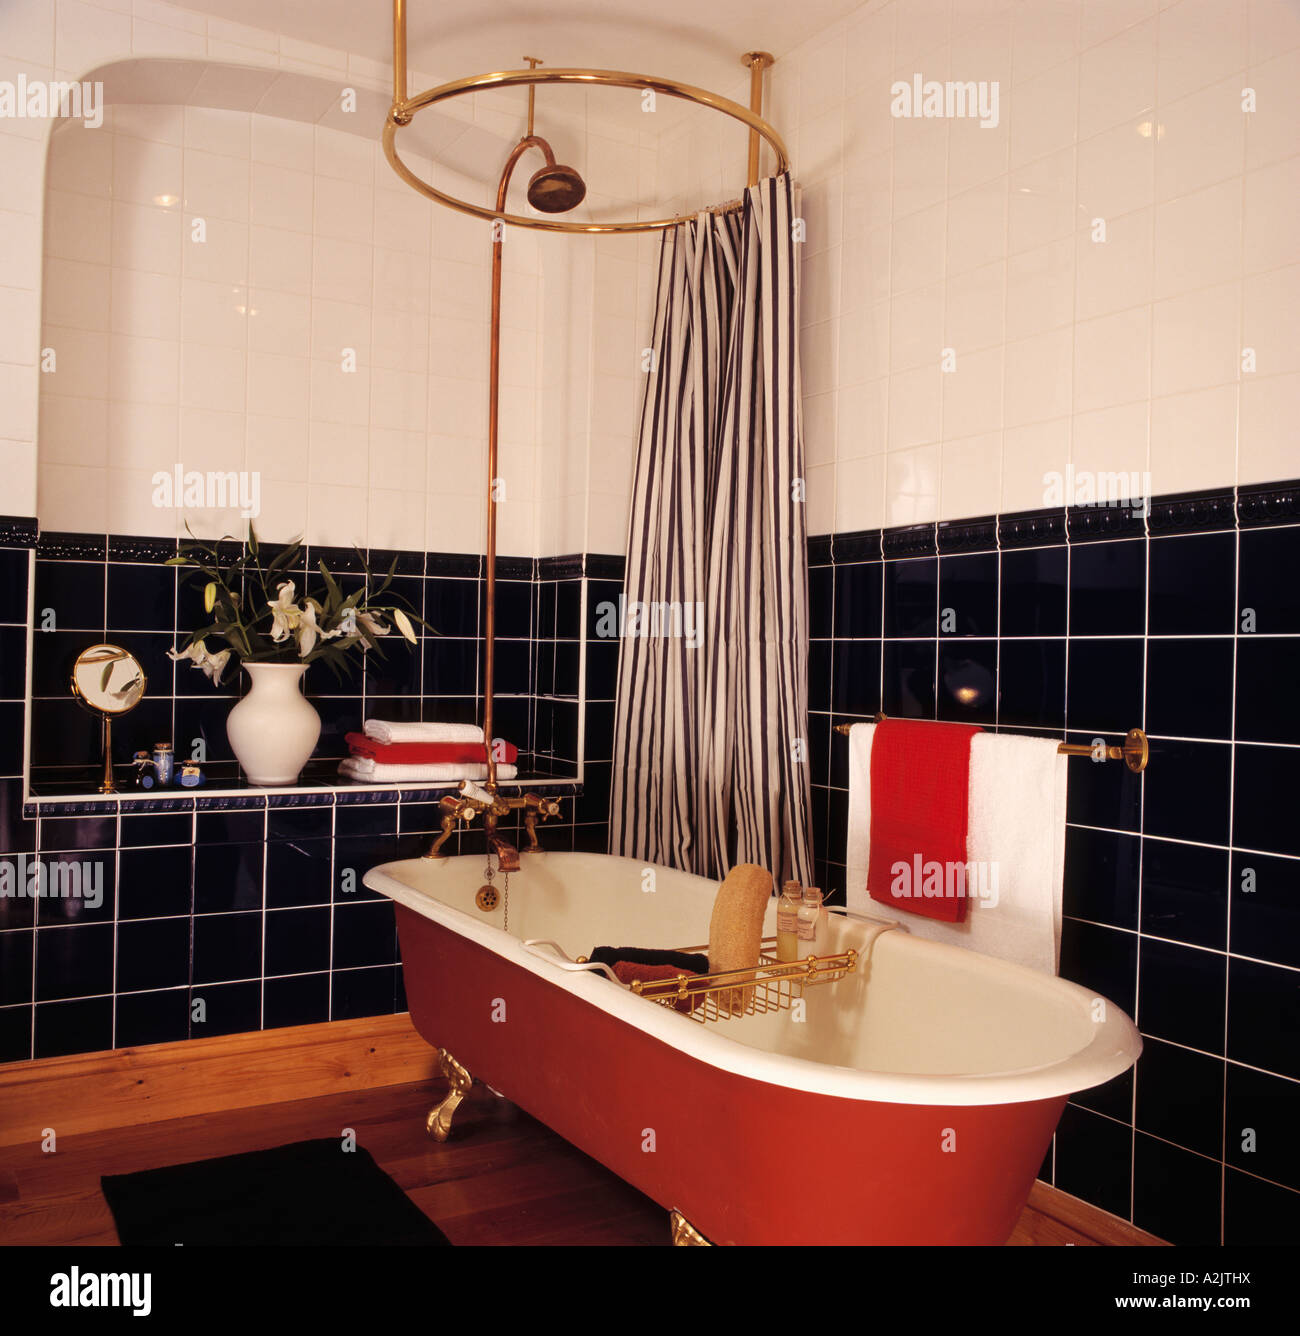 Striped Shower Curtain On Circular Rail Above Red Freestanding Bath In Black And White Bathroom